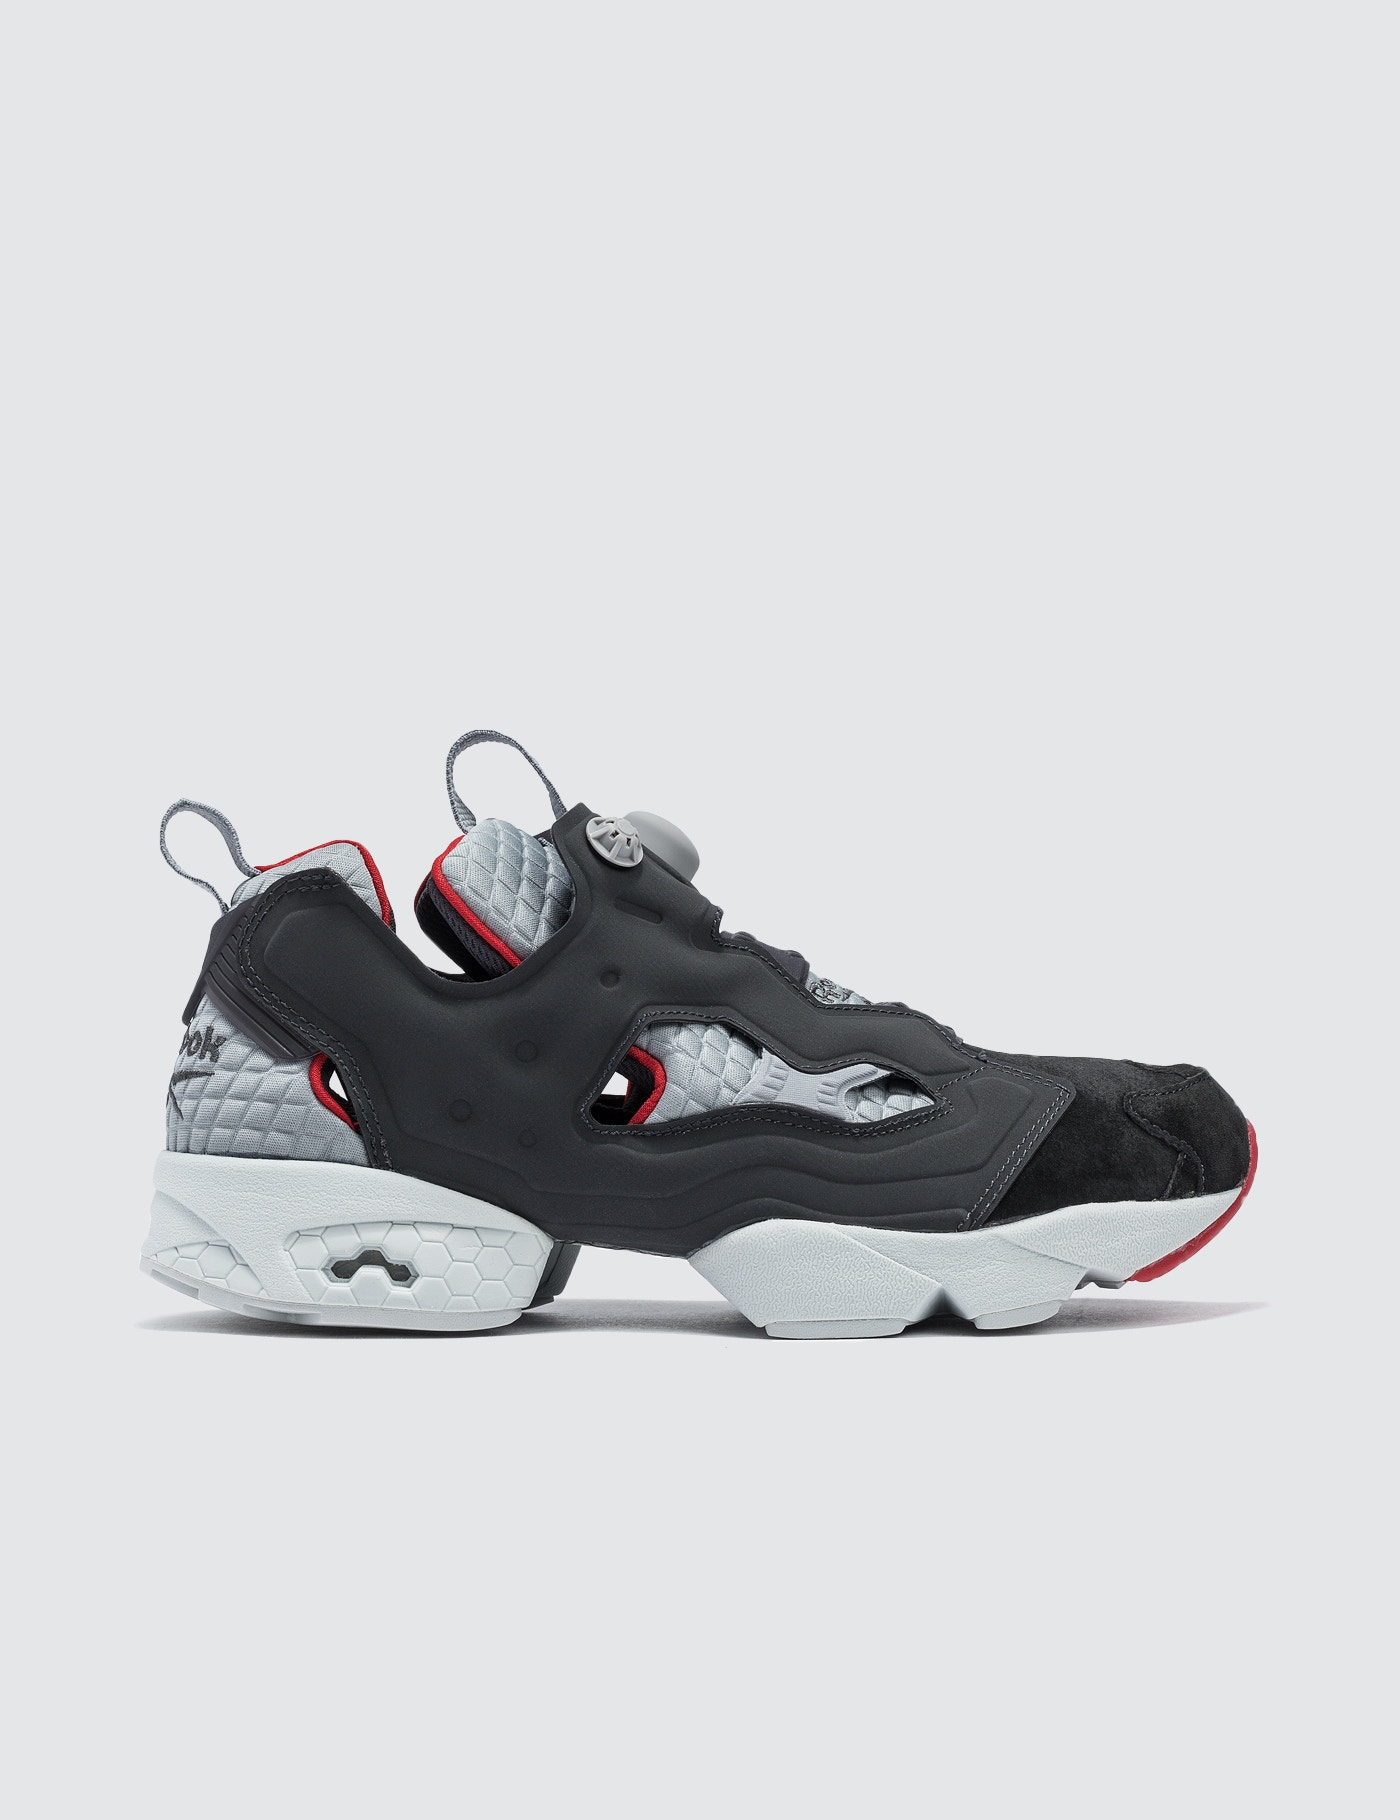 2e7d204ccdf Buy Original Reebok Instapump Fury OG ALR at Indonesia